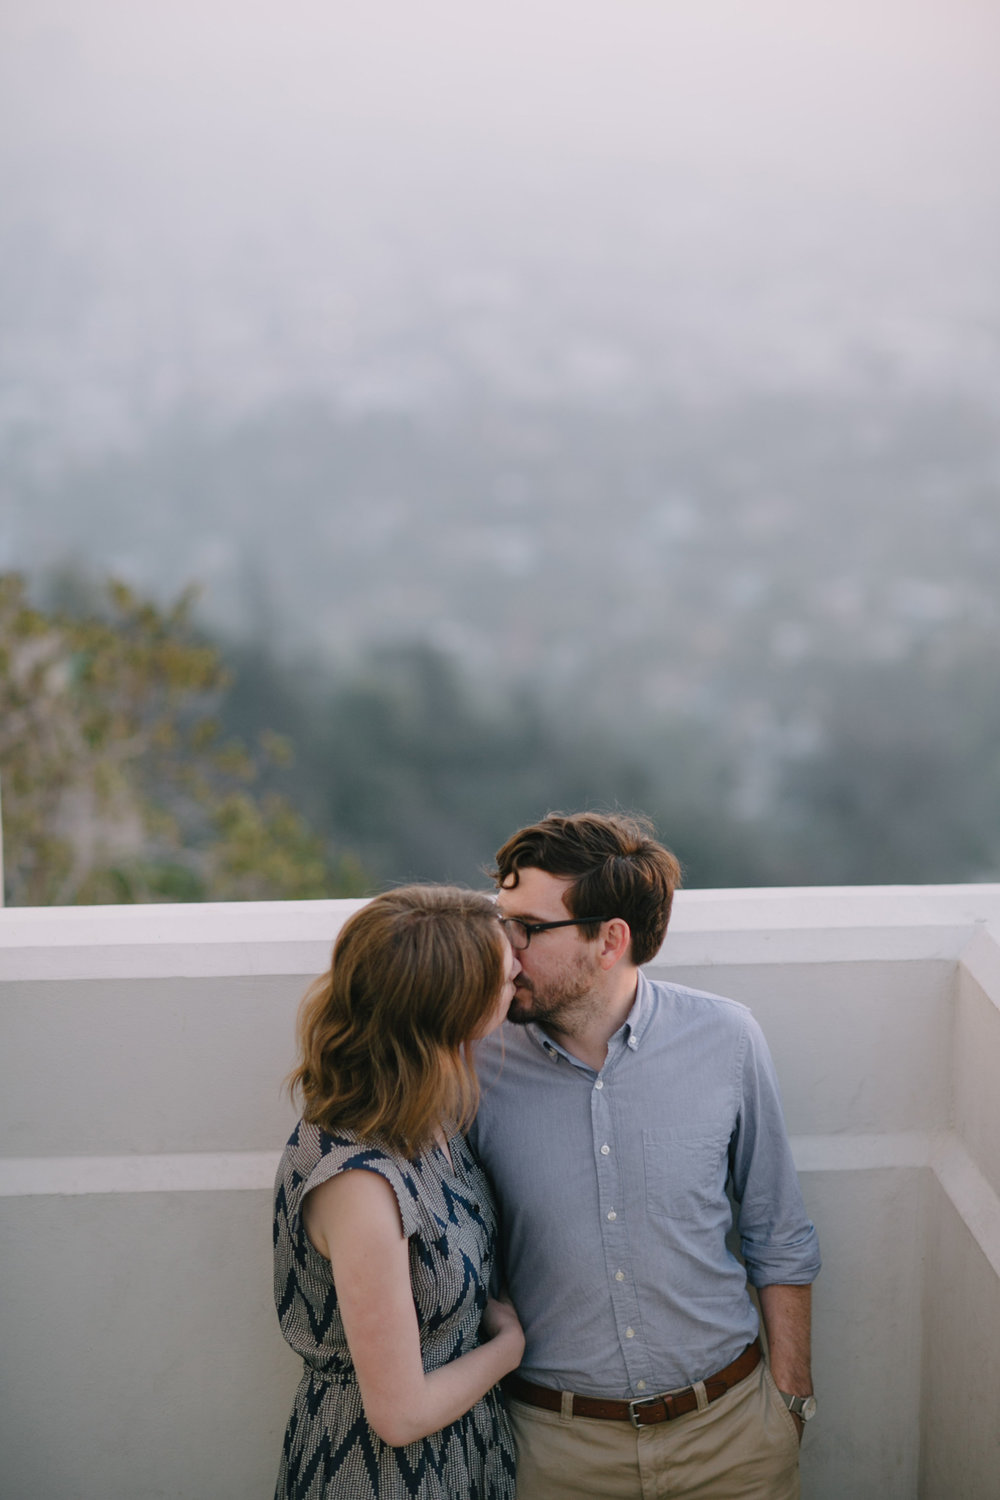 Griffith Park Observatory and Trails Cafe Los Angeles Engagement Session - Alison and Andrew-014.jpg